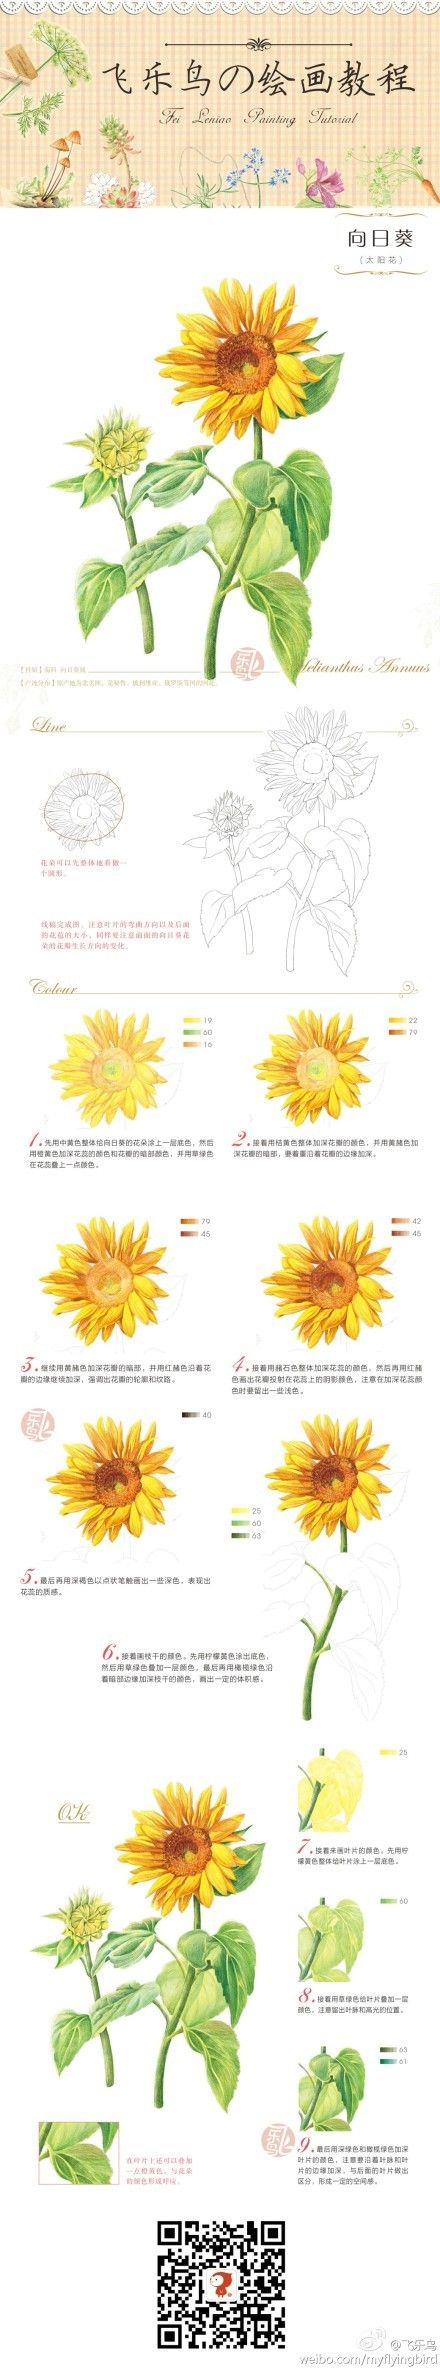 How to draw and paint a sunflower drawing pinterest sunflowers